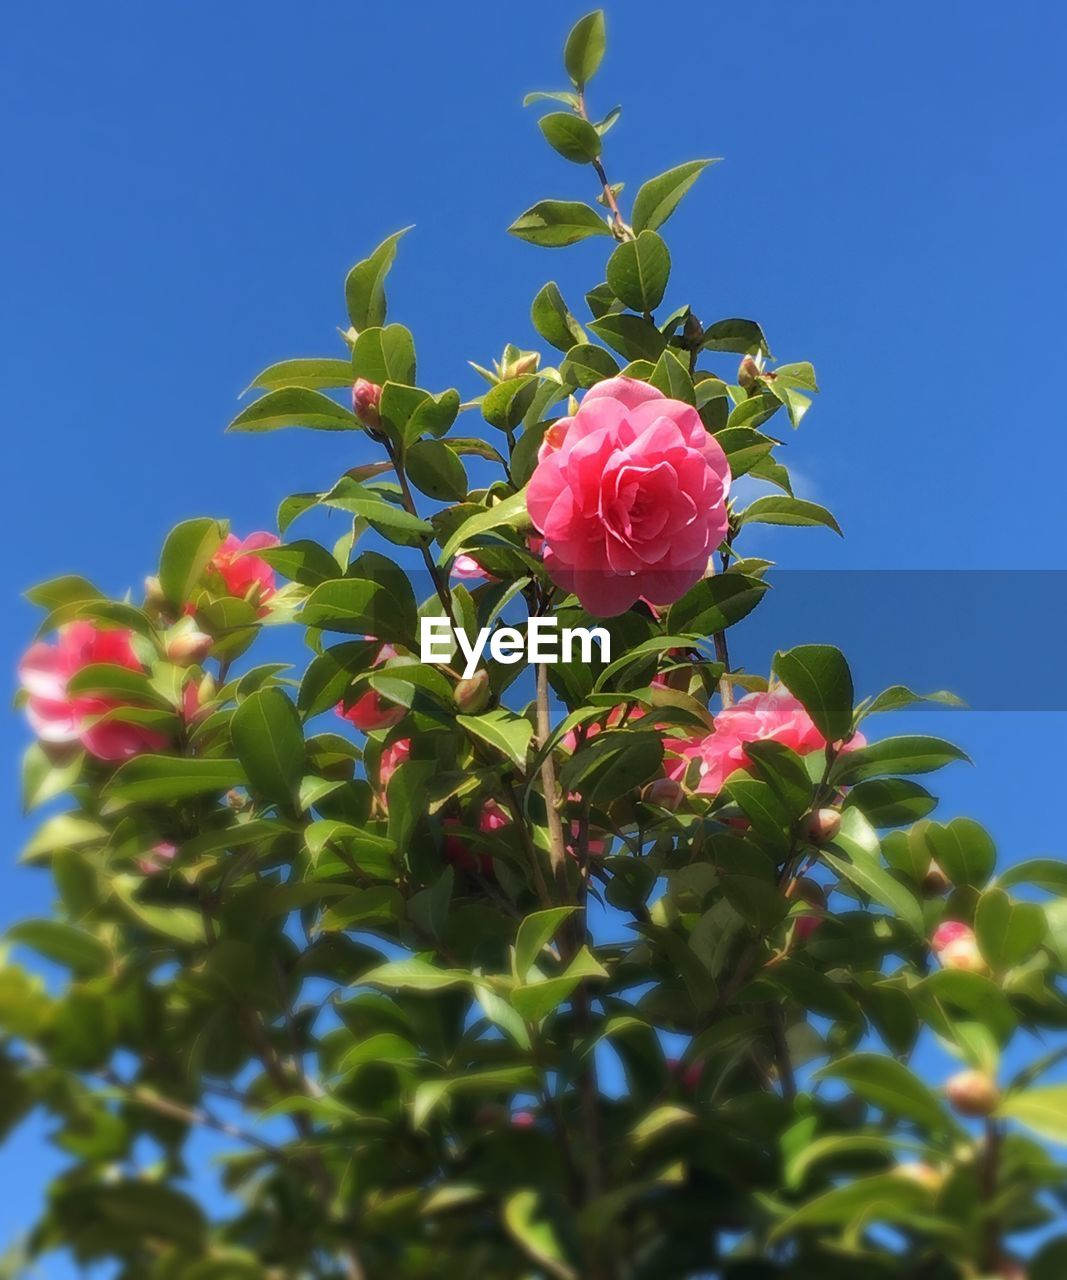 growth, flower, beauty in nature, petal, nature, fragility, low angle view, leaf, plant, no people, blue, freshness, day, outdoors, green color, pink color, sunlight, clear sky, blooming, flower head, sky, close-up